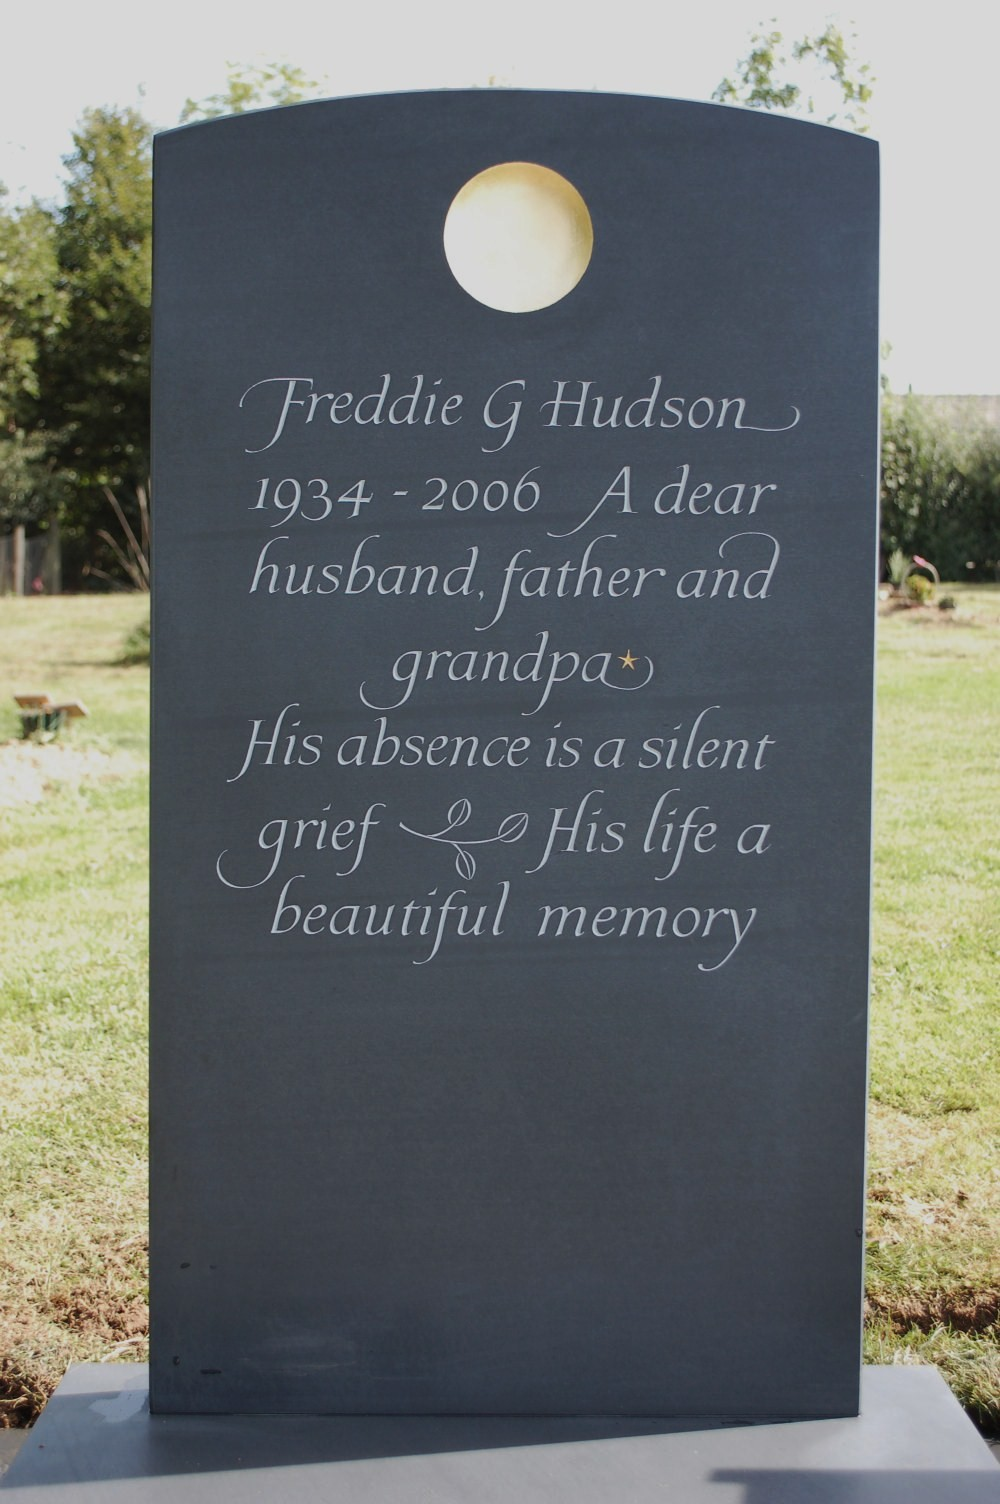 In Loving Memory Quotes Tasteful Memorial Quotes And Headstone Epitaphs  Blog  Stoneletters